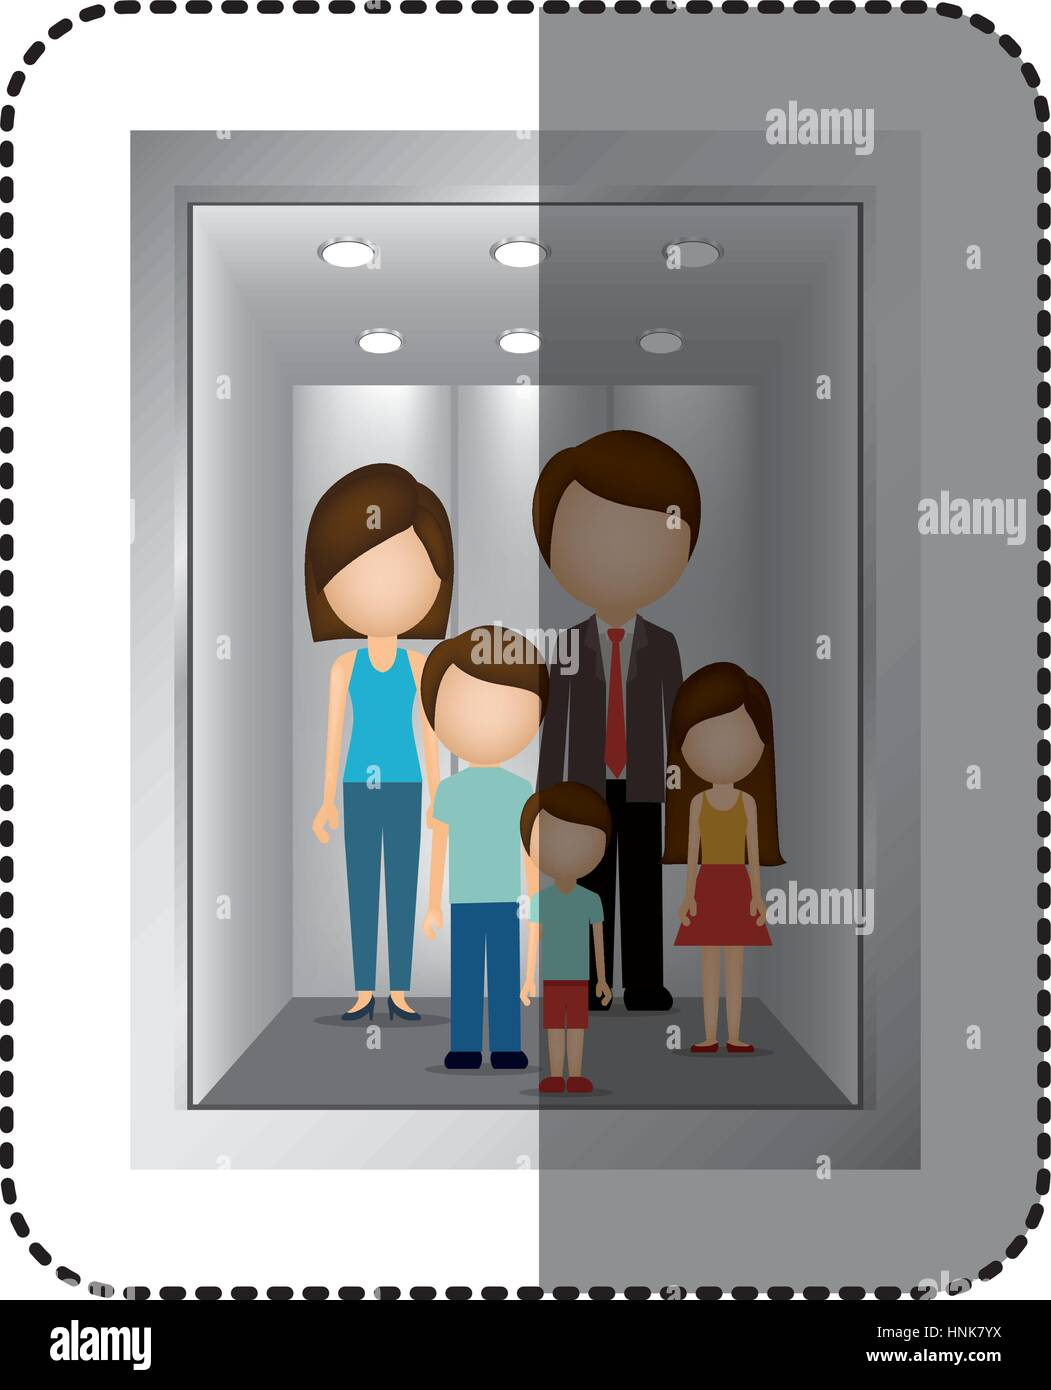 people inside elevator. stock vector - elevator with people inside icon image, illustration